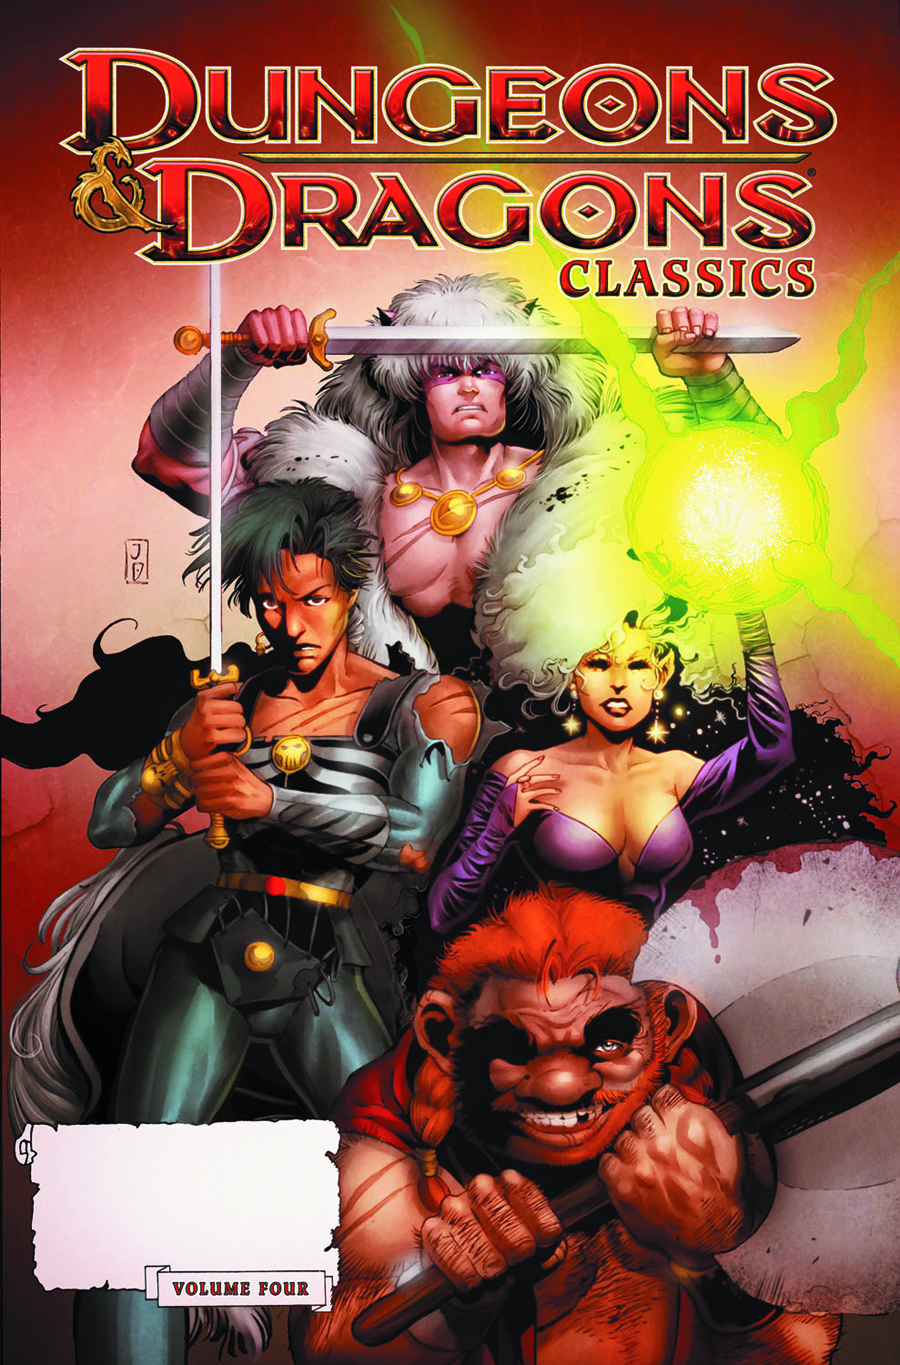 DUNGEONS & DRAGONS CLASSICS TP VOL 04